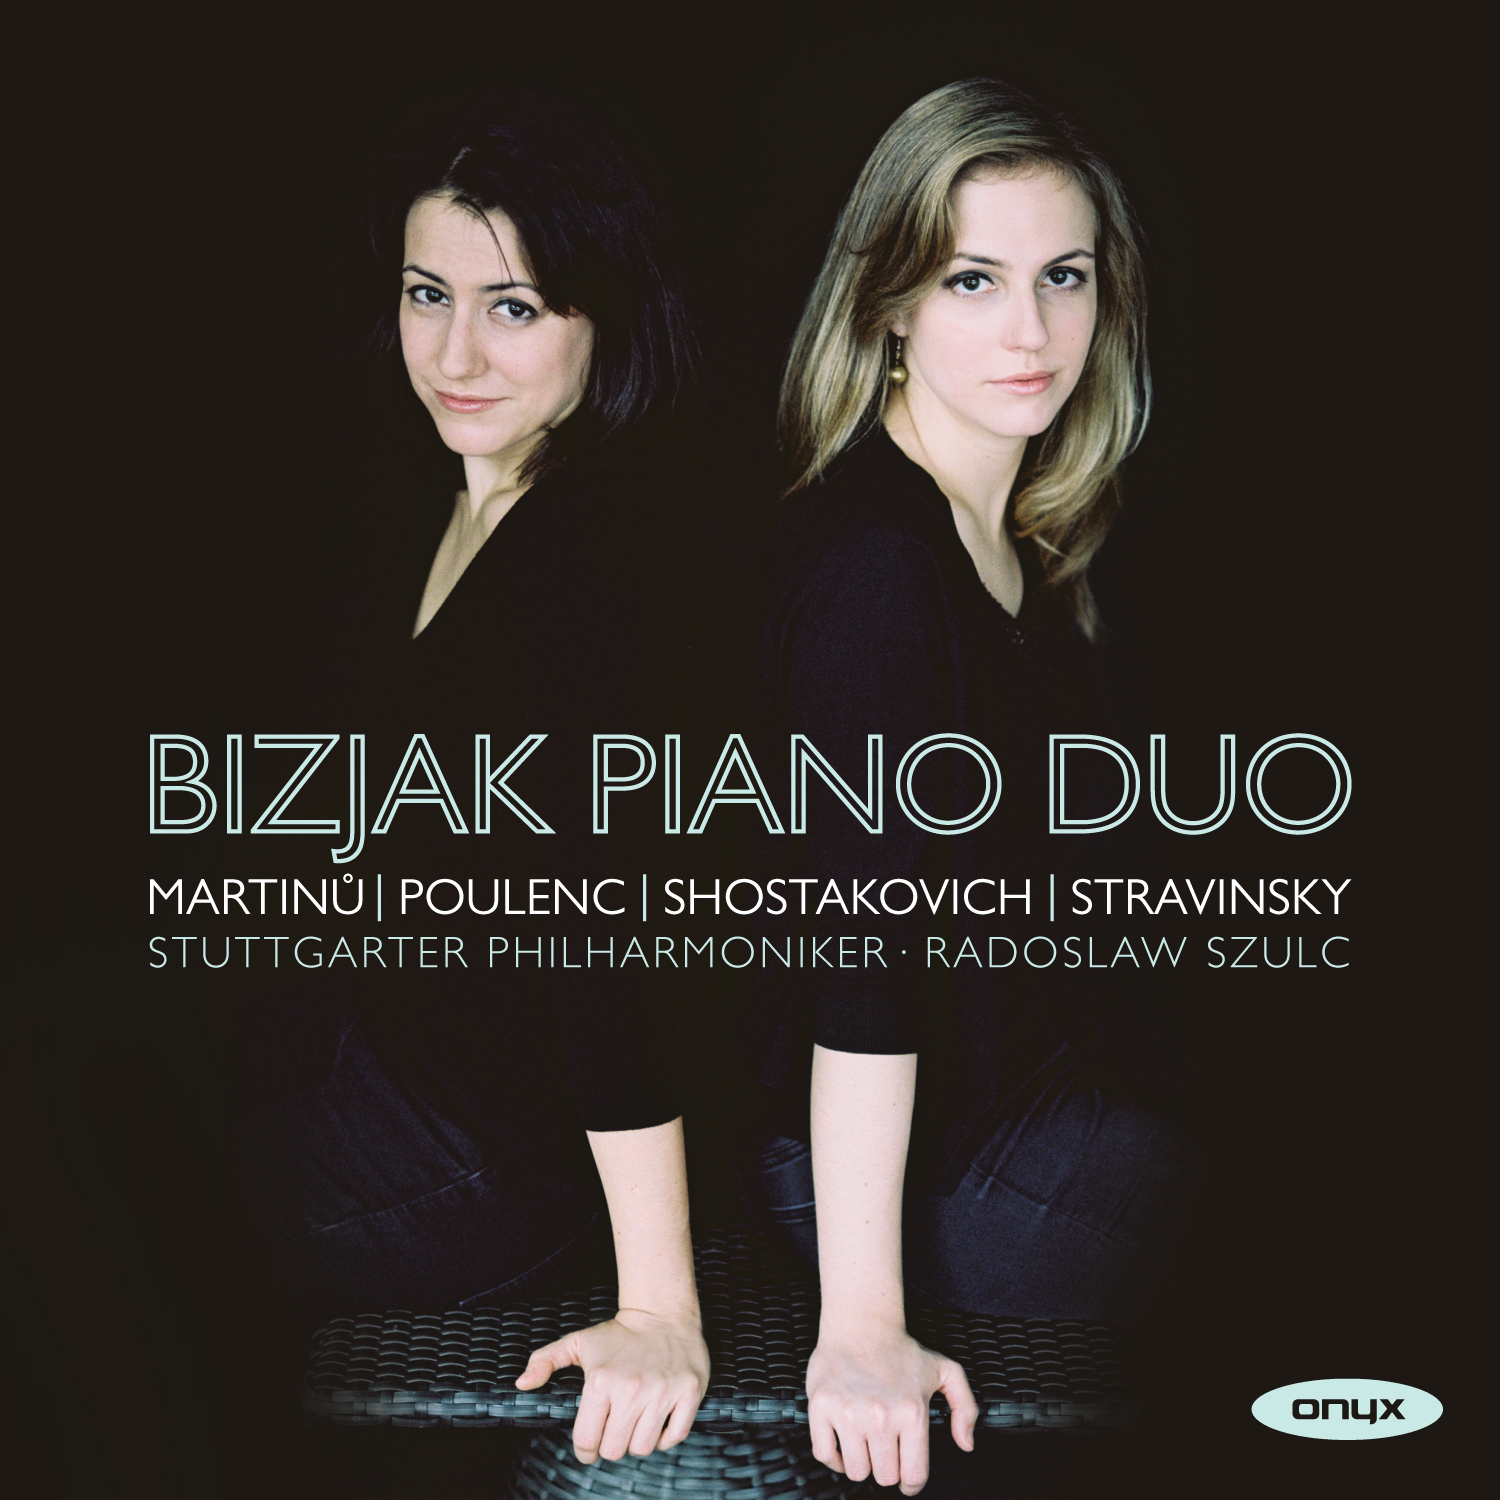 Martinu & Poulenc: Concertos for Two Pianos / Shostakovich / Stravinsky